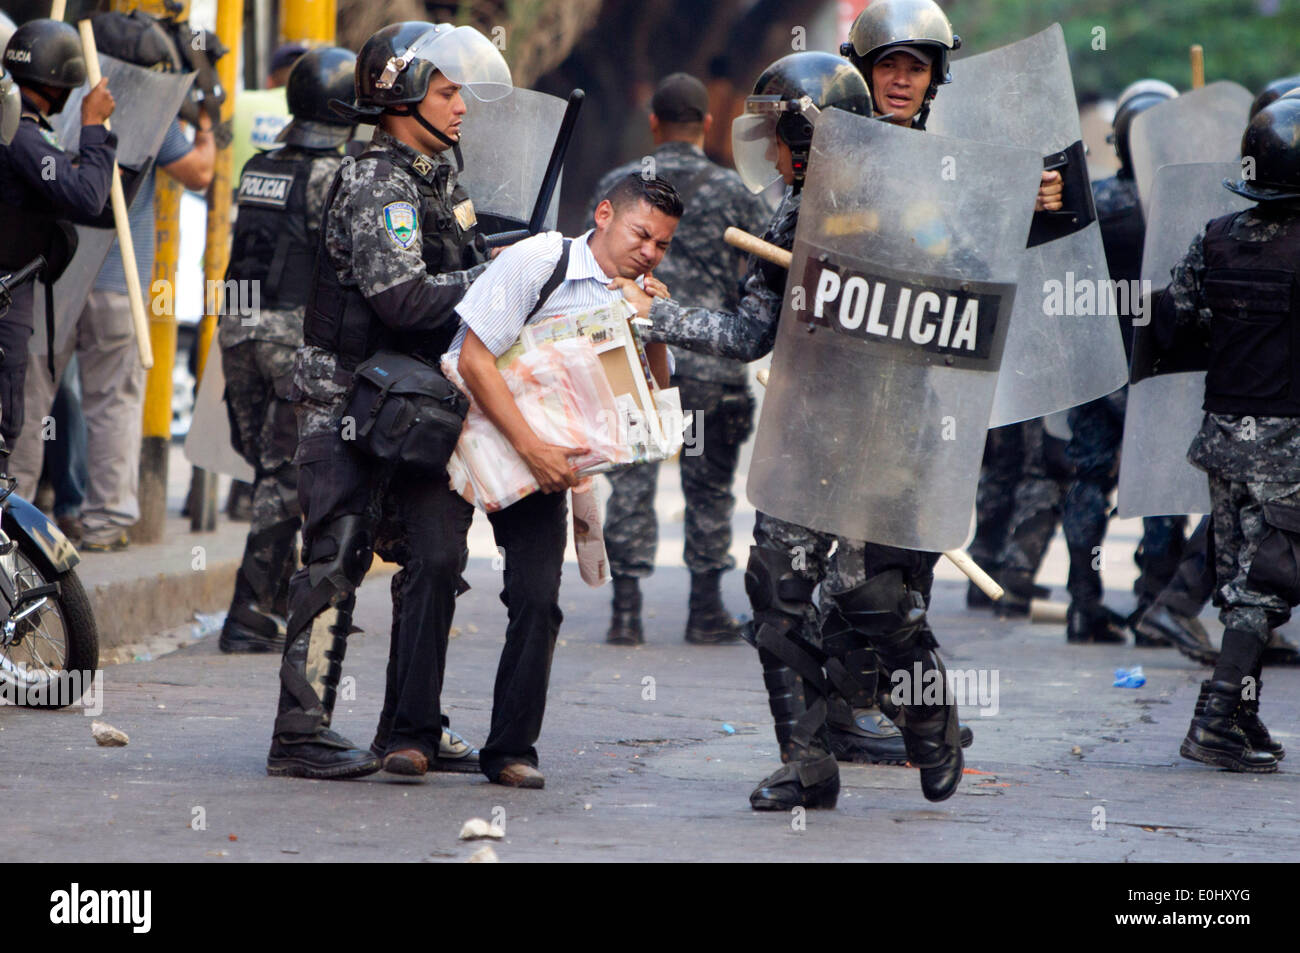 Tegucigalpa, Honduras. 13th May, 2014. Police elements detain a person during a clash between followers of the former Honduran President, Manuel Zelaya, and police, in front of the National Congress in Tegucigalpa, Honduras, on May 13, 2014. Followers and deputies of the Liberty and Refoundation Party (Libre, for its acronym in Spanish), the second political force in Honduras, broke in the National Congress on Tuesday, after clashing with police elements that guarded the Legislative Palace. Credit:  Rafael Ochoa/Xinhua/Alamy Live News Stock Photo